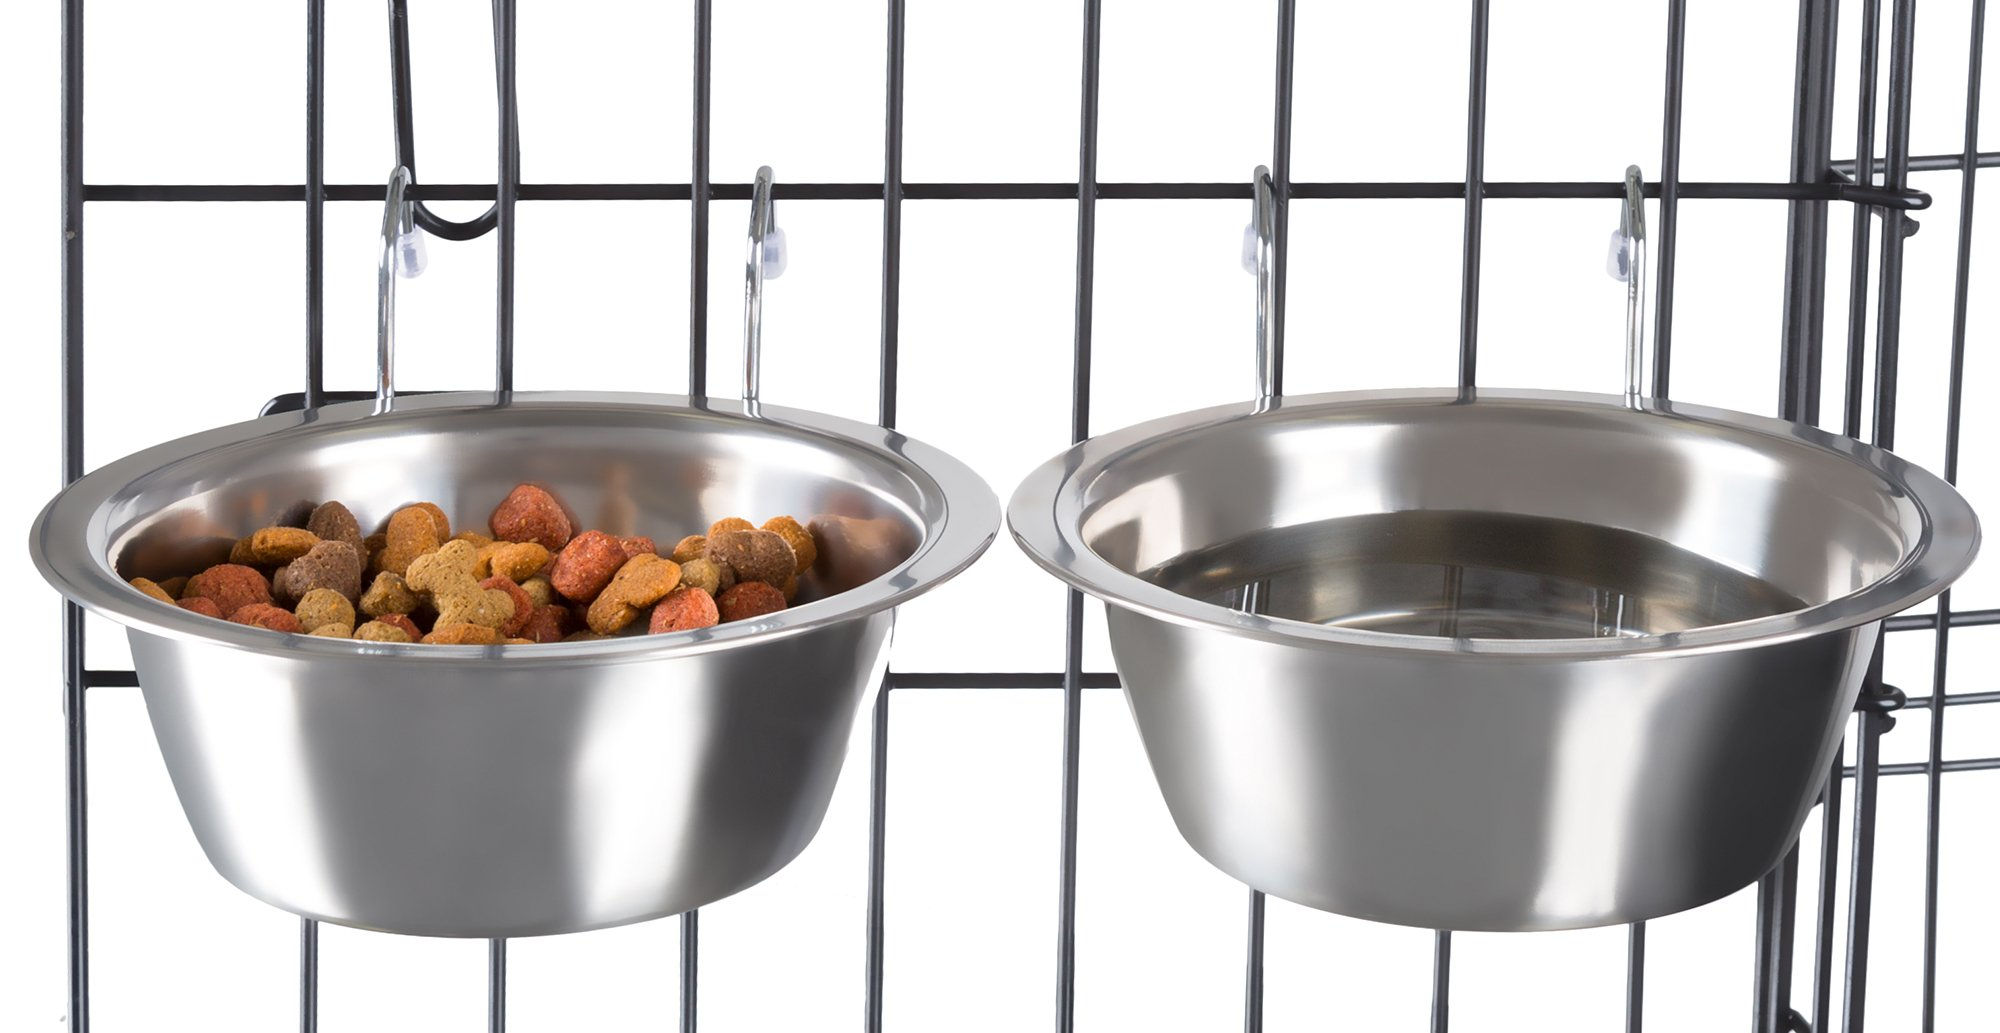 PETMAKER Stainless Steel Hanging Pet Bowls for Dogs and Cats- Cage, Kennel, and Crate Feeder Dish for Food and Water- Set of 2, 20 oz Each By